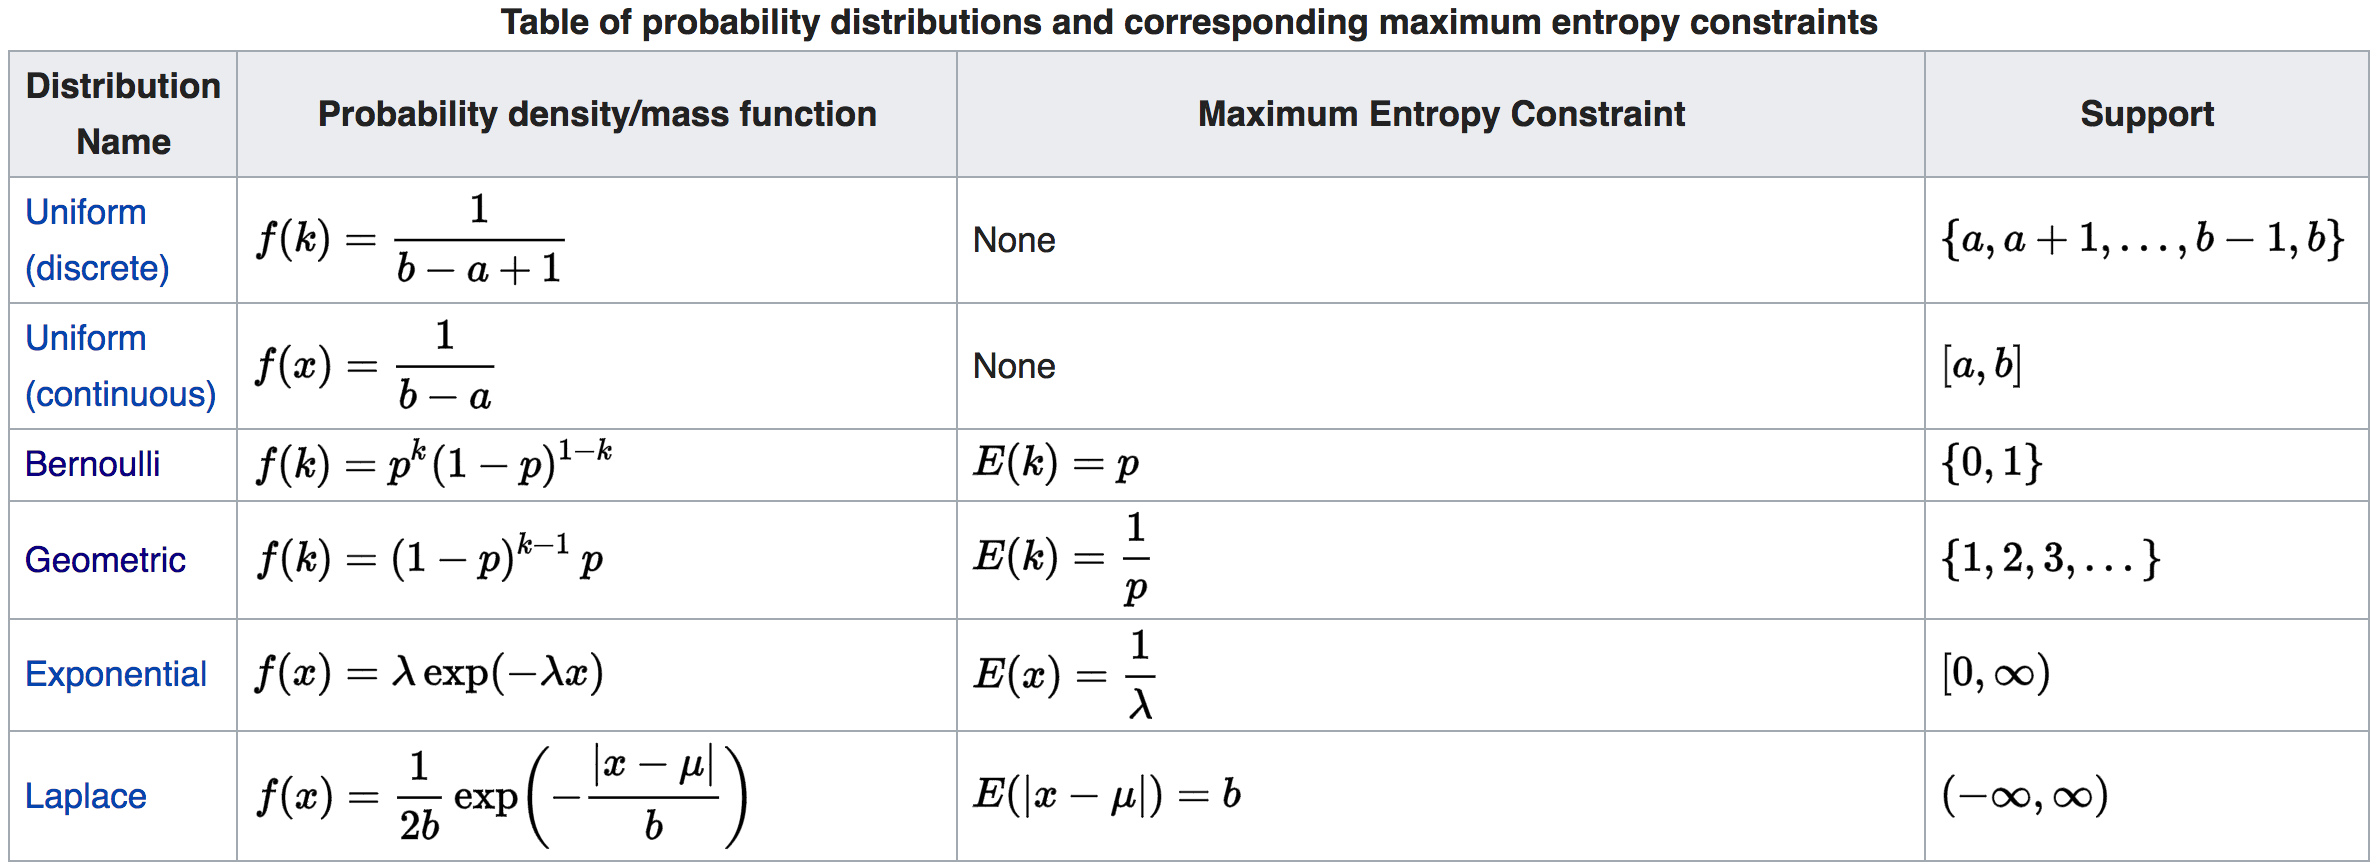 maximum entropy distributions